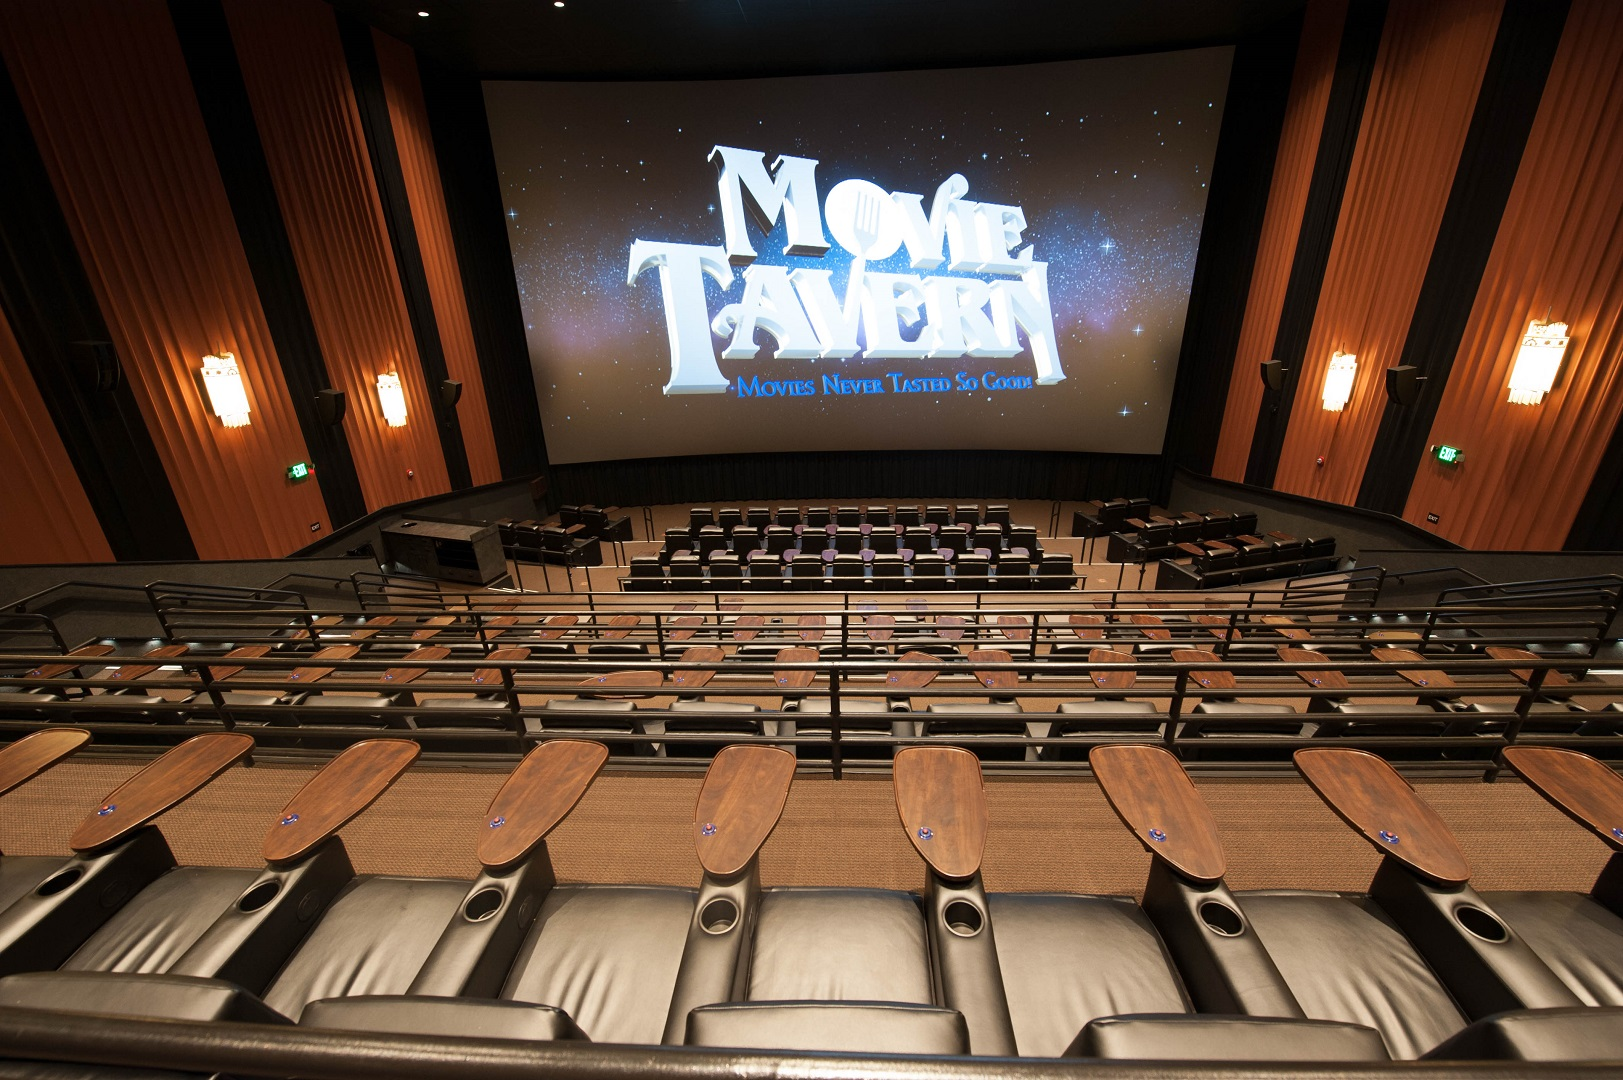 movie tavern theater